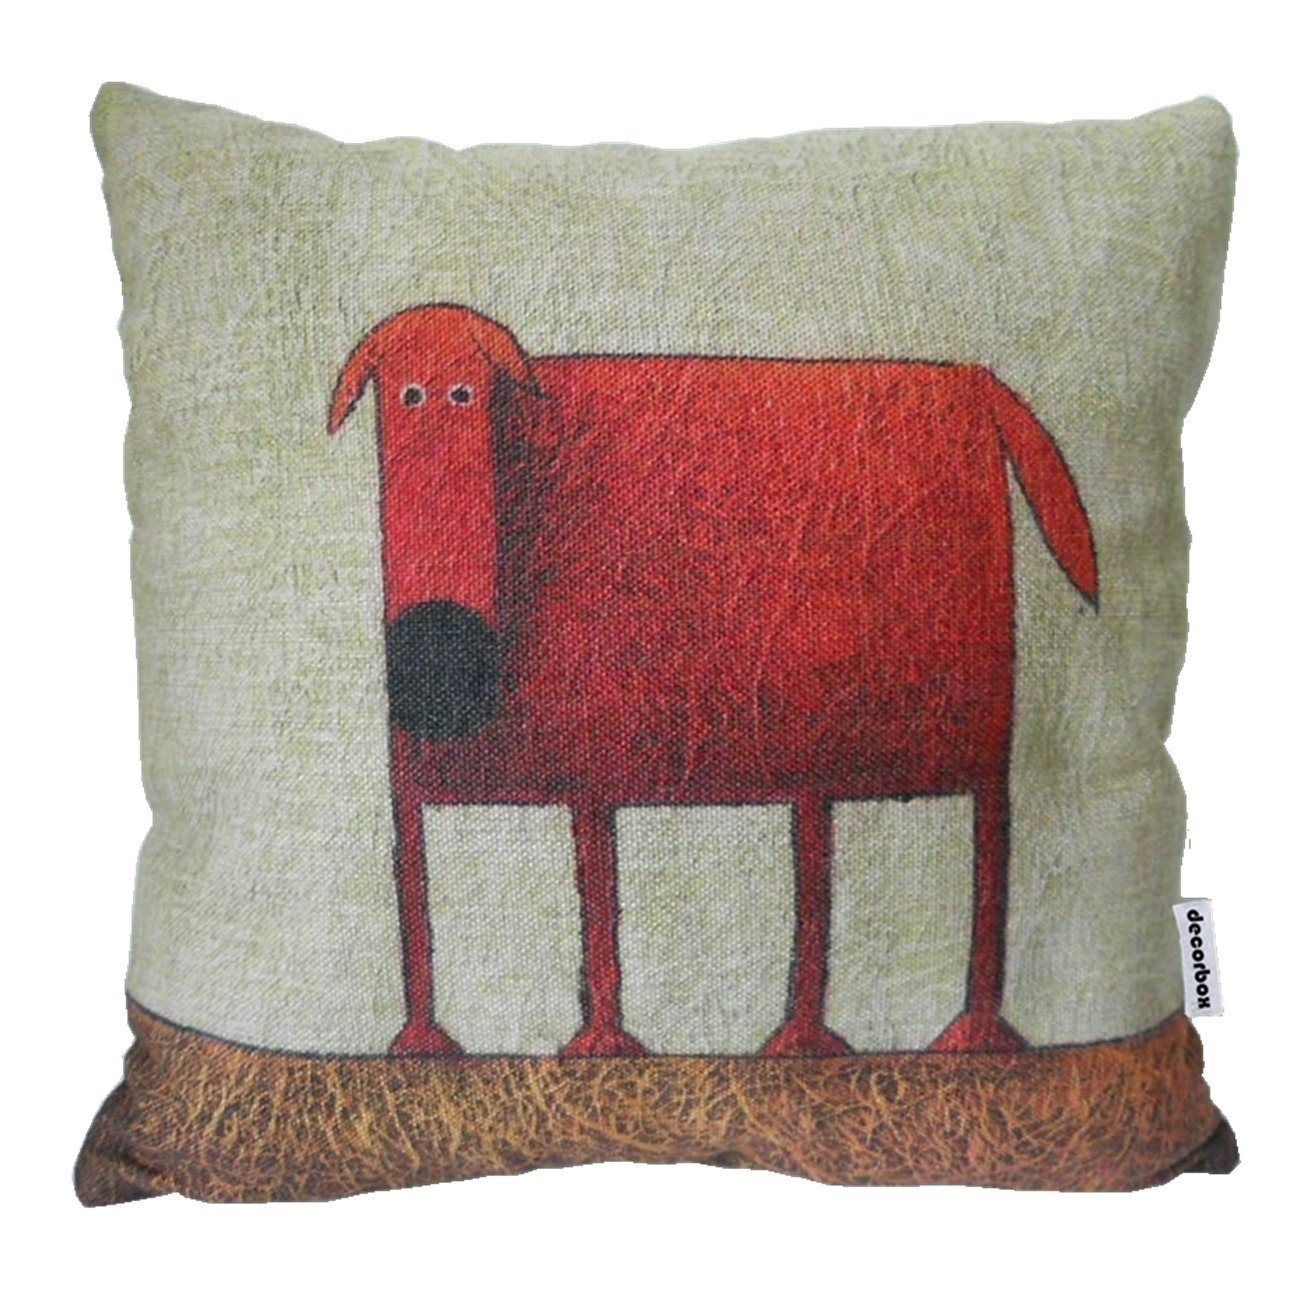 Cotton Linen Square Decorative Throw Pillow Case Cushion Cover Green Background Red Dog 18